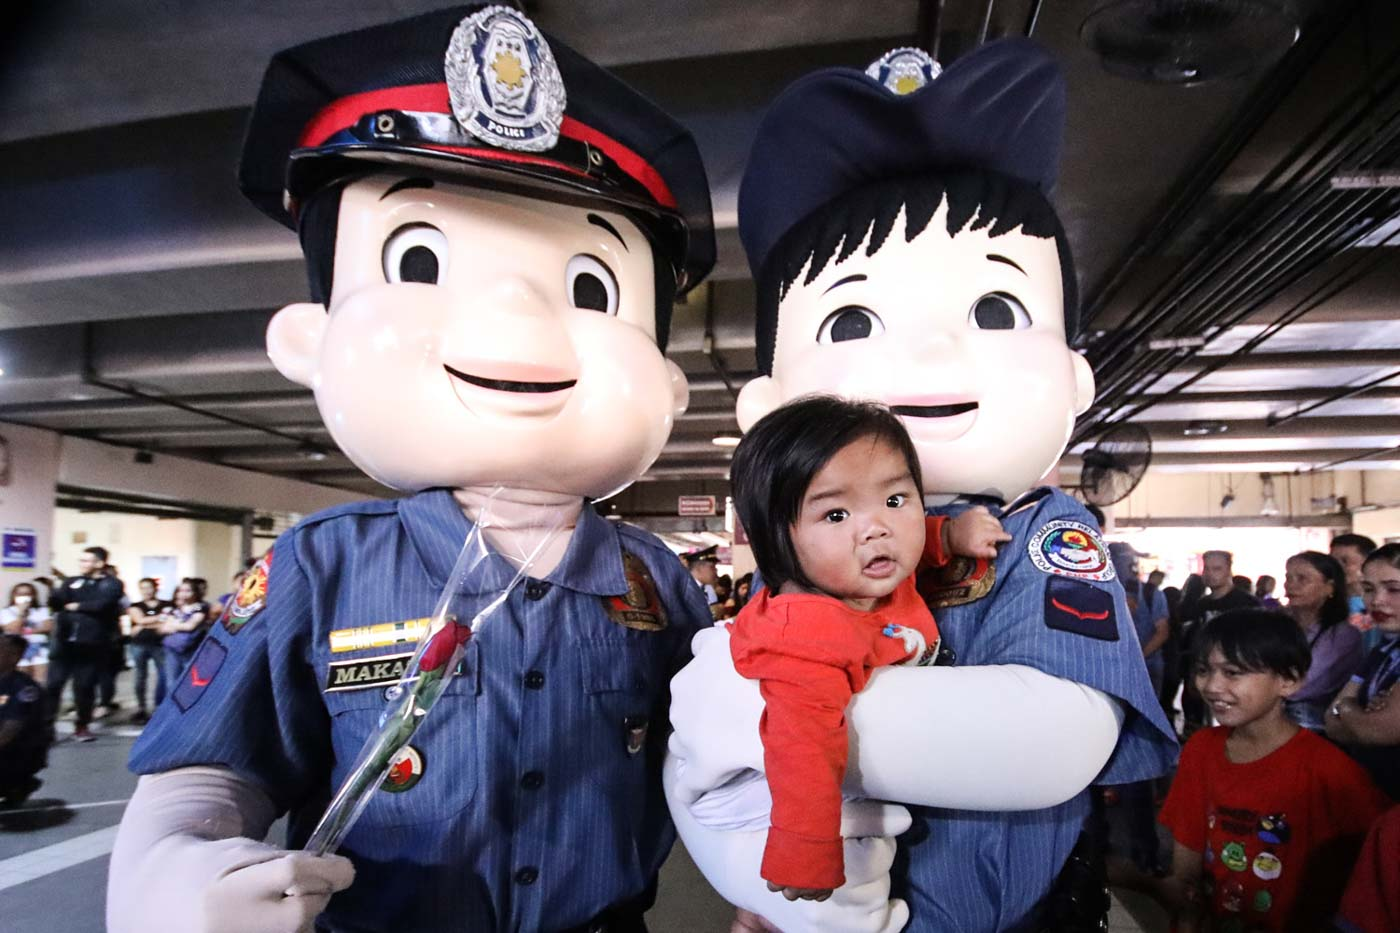 MASCOTS FOR KIDS. The Philippine National Police brings out mascots to surprise kids, too. Photo by Darren Langit/Rappler